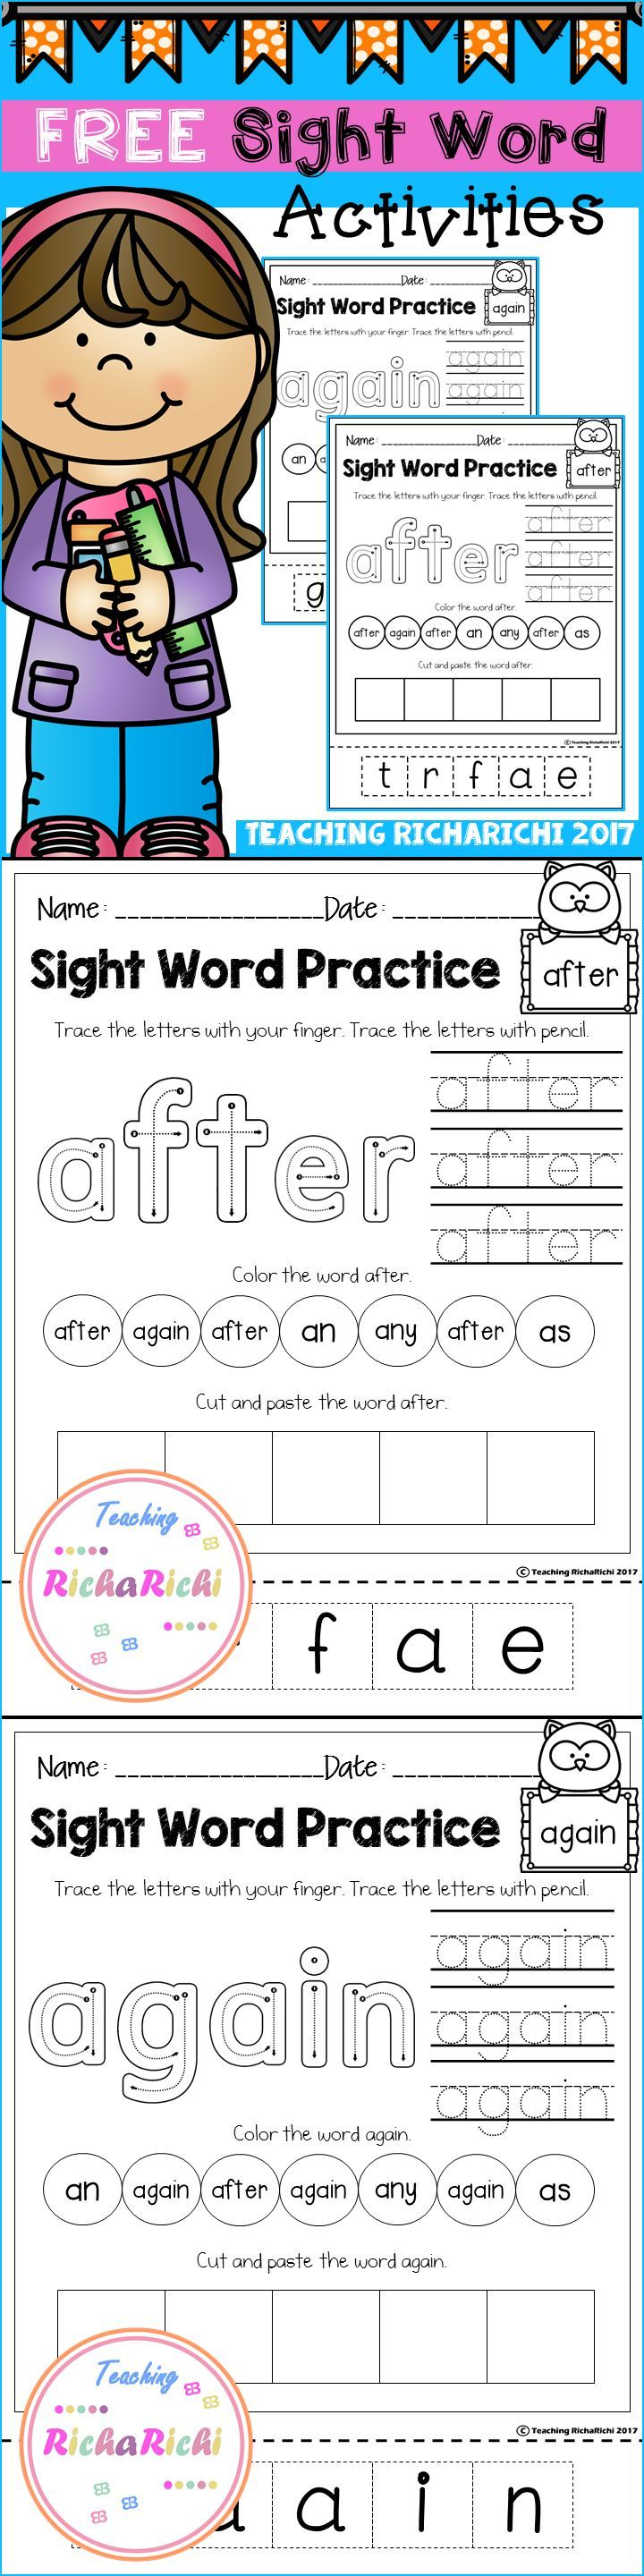 worksheet First Grade Sight Word Worksheets best 25 sight word worksheets ideas on pinterest words primer see more free kindergarten activities pre k first grade pre